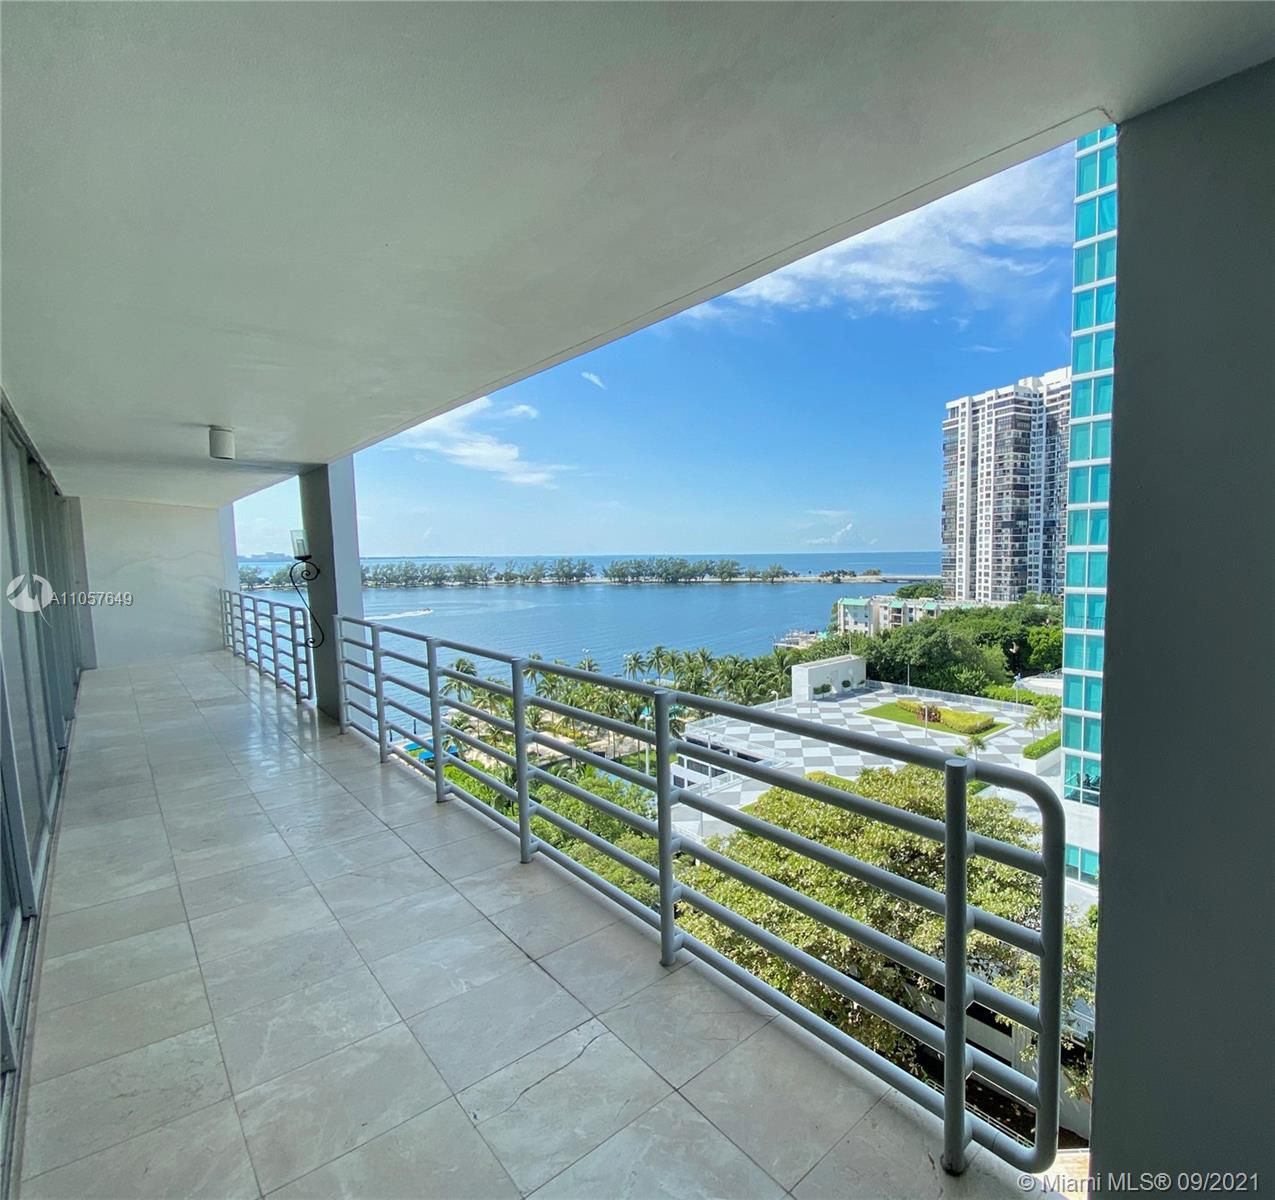 This great opportunity at the exclusive Atlantis on Brickell is the 2bed/2bath layout closest to the